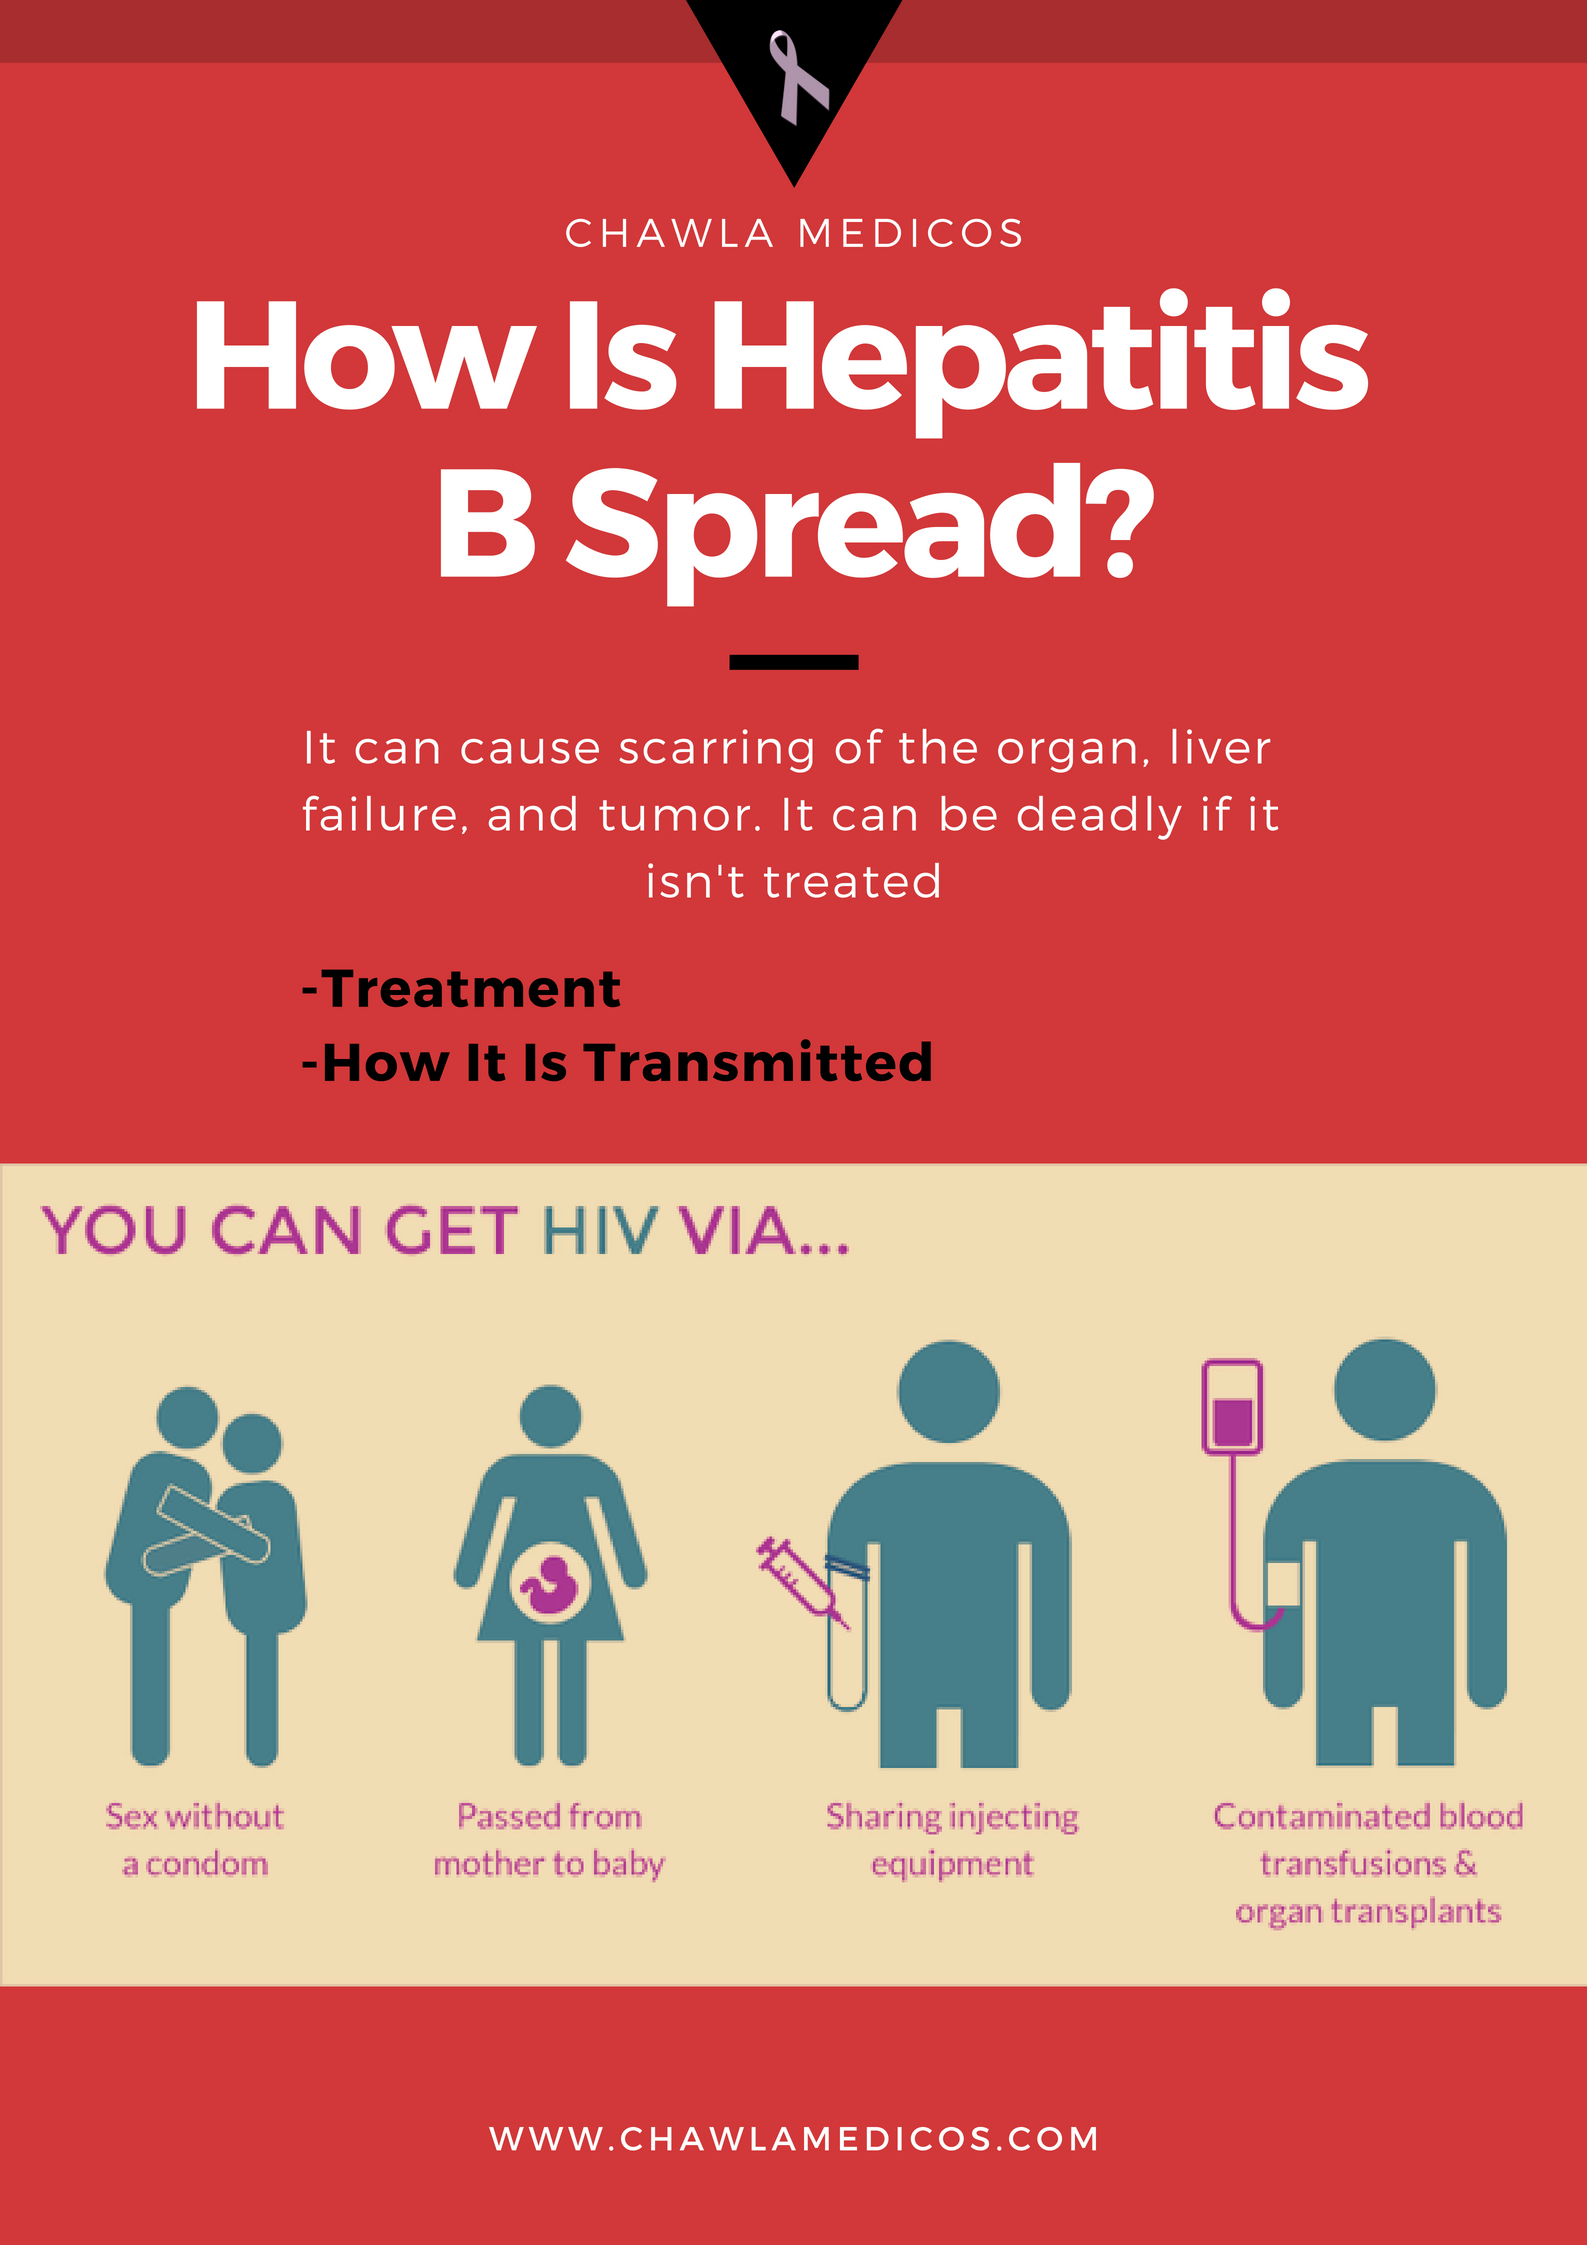 How Is Hepatitis B Spread?